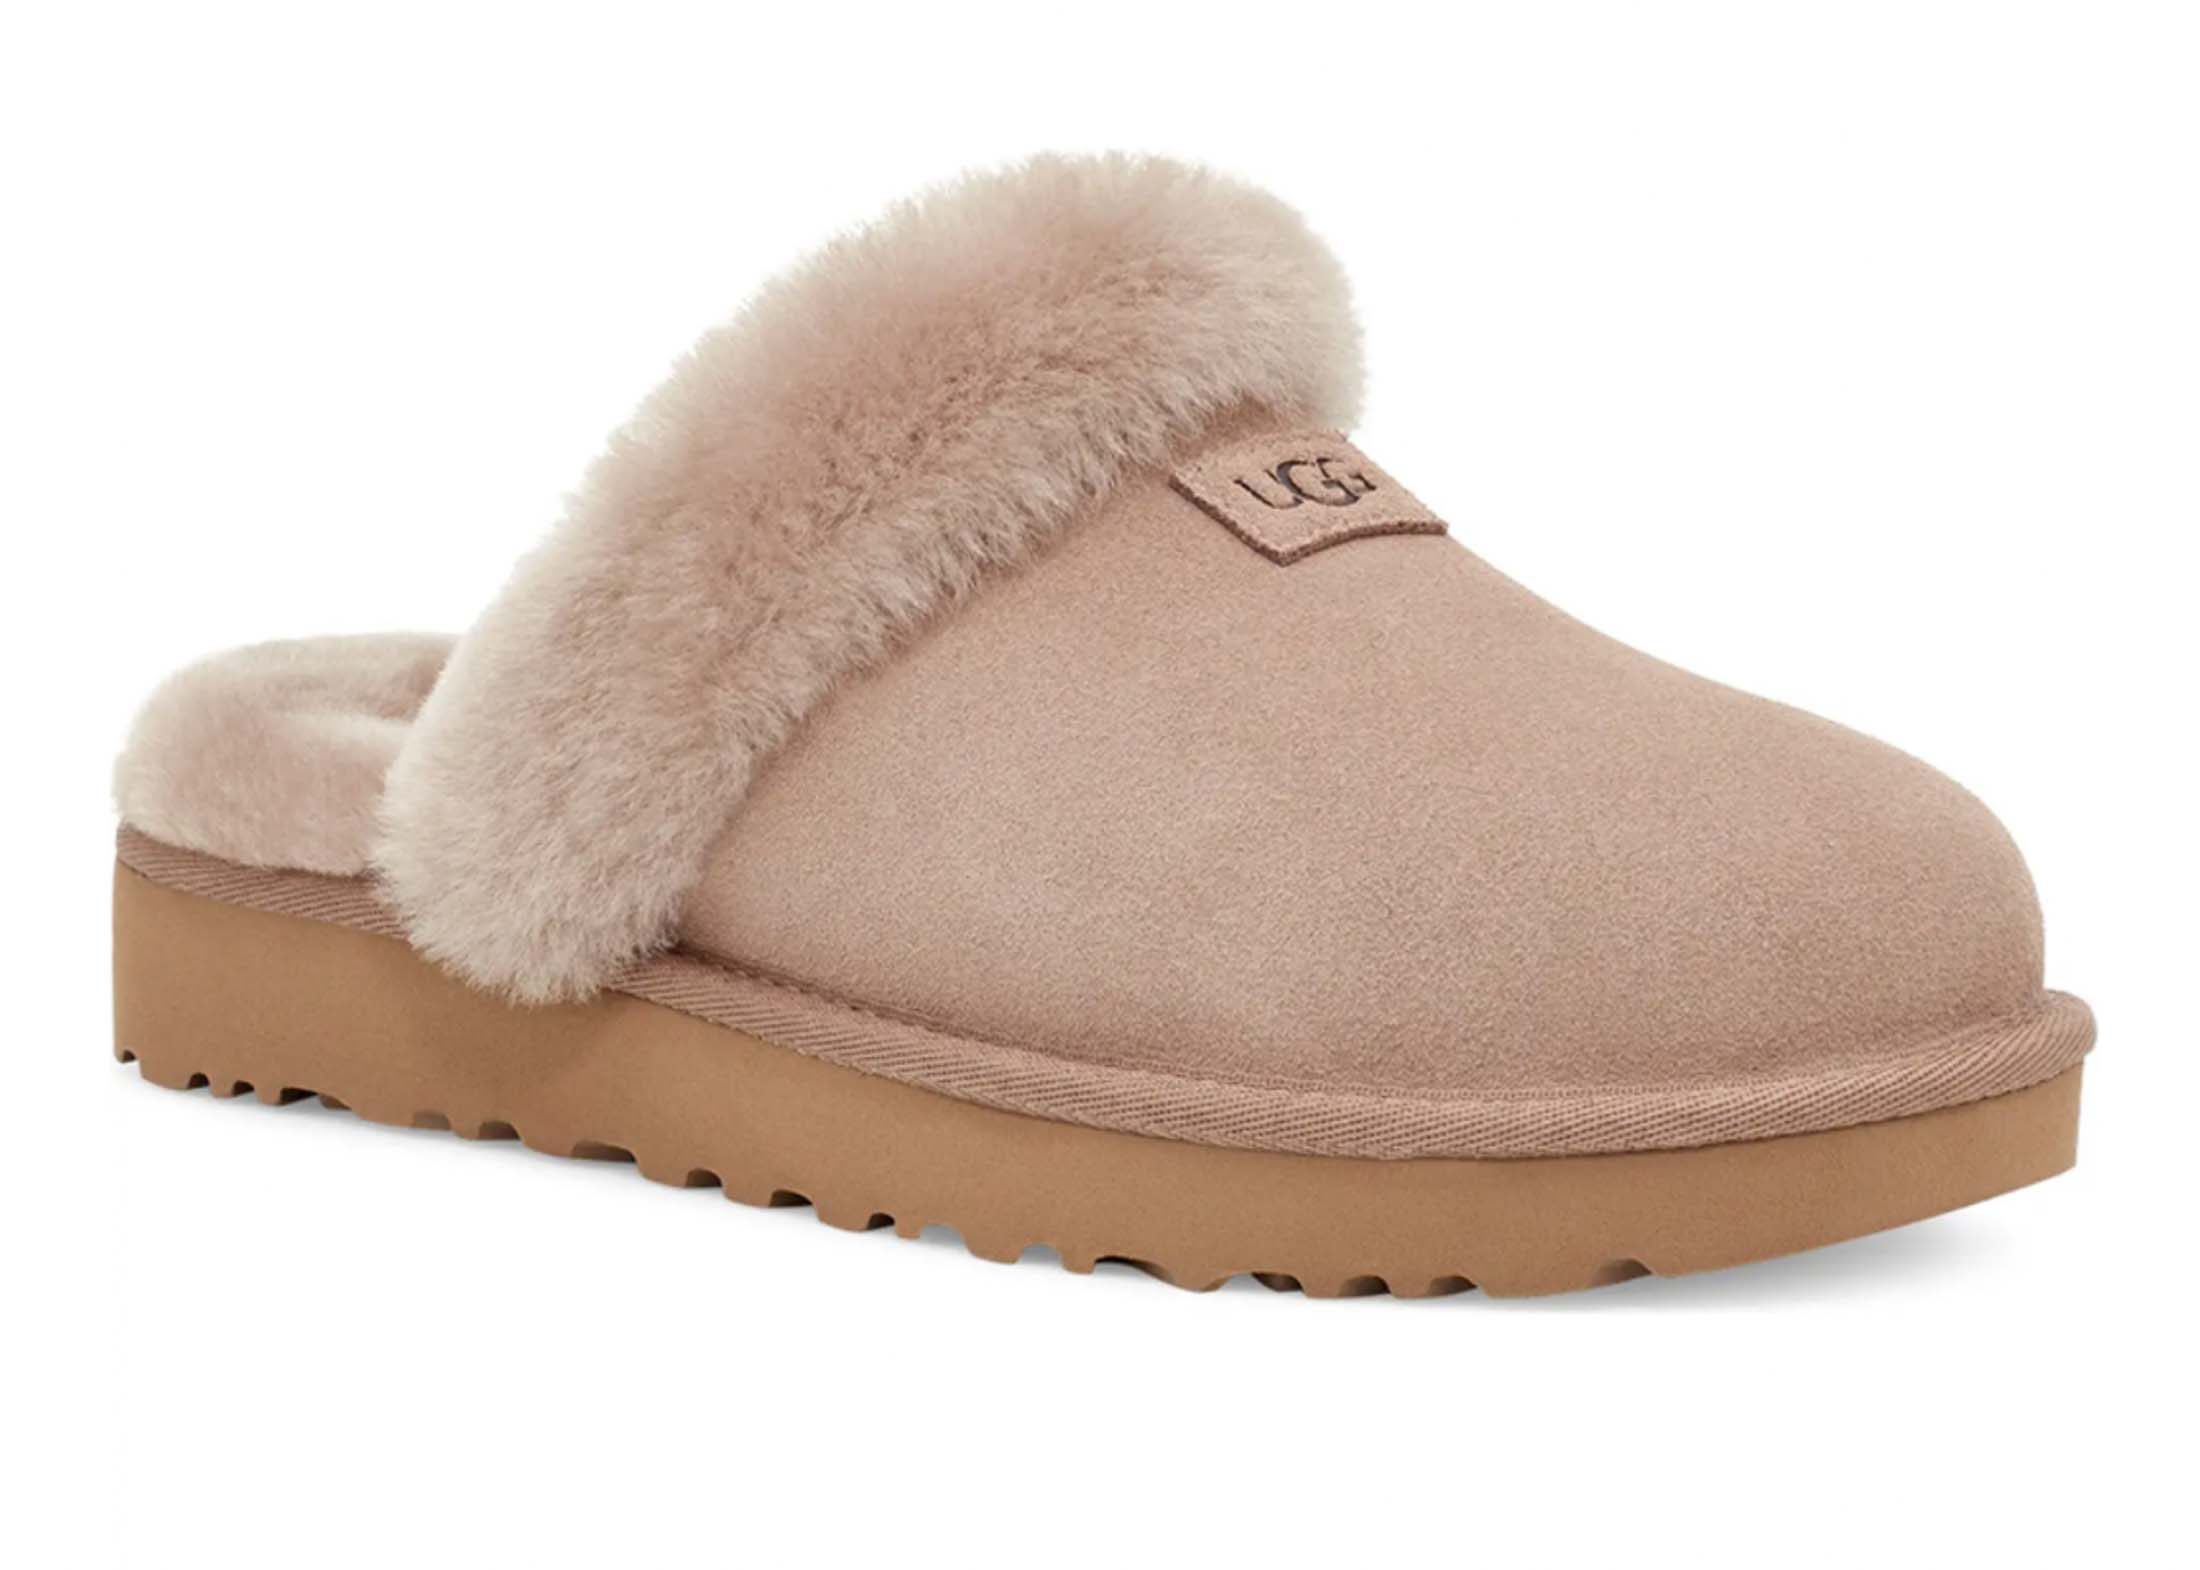 I have been rocking the OG UGG slippers for four years now, and it is 100% time to replace them. The current pair of UGG Slippers in the #NSale are an elevated version of the original design.